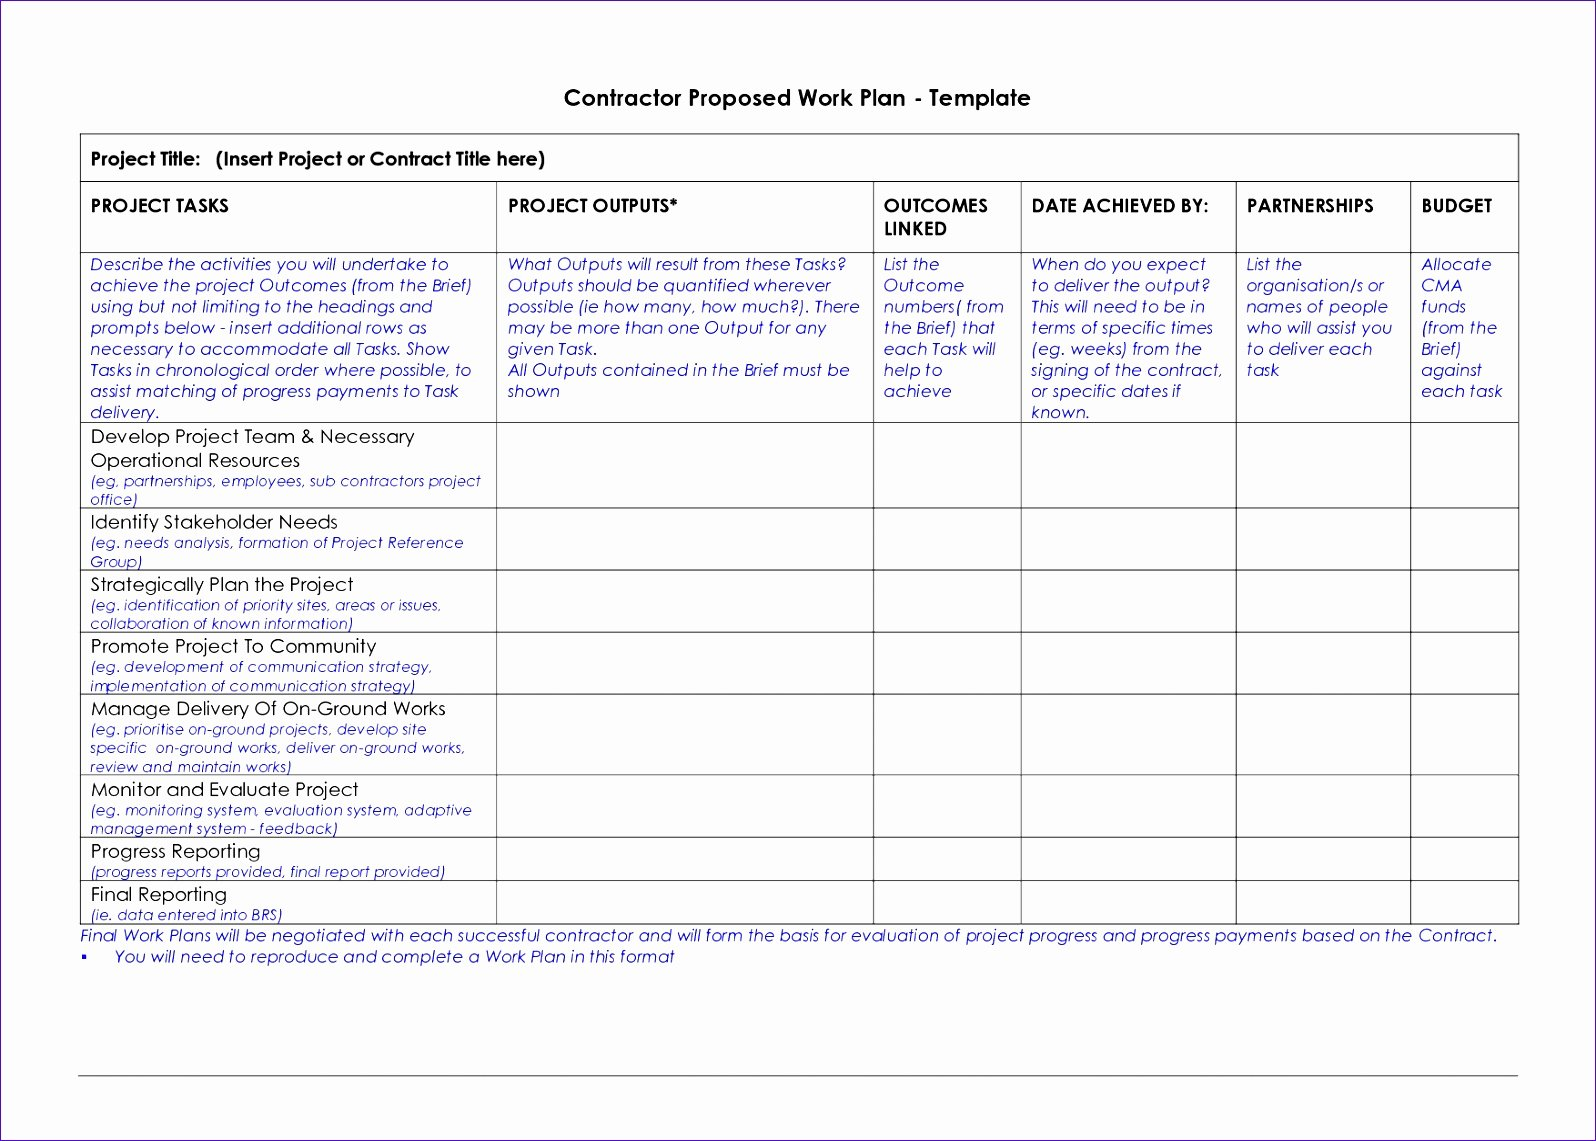 100 Day Plan Template Awesome 8 100 Day Plan Template Excel Exceltemplates